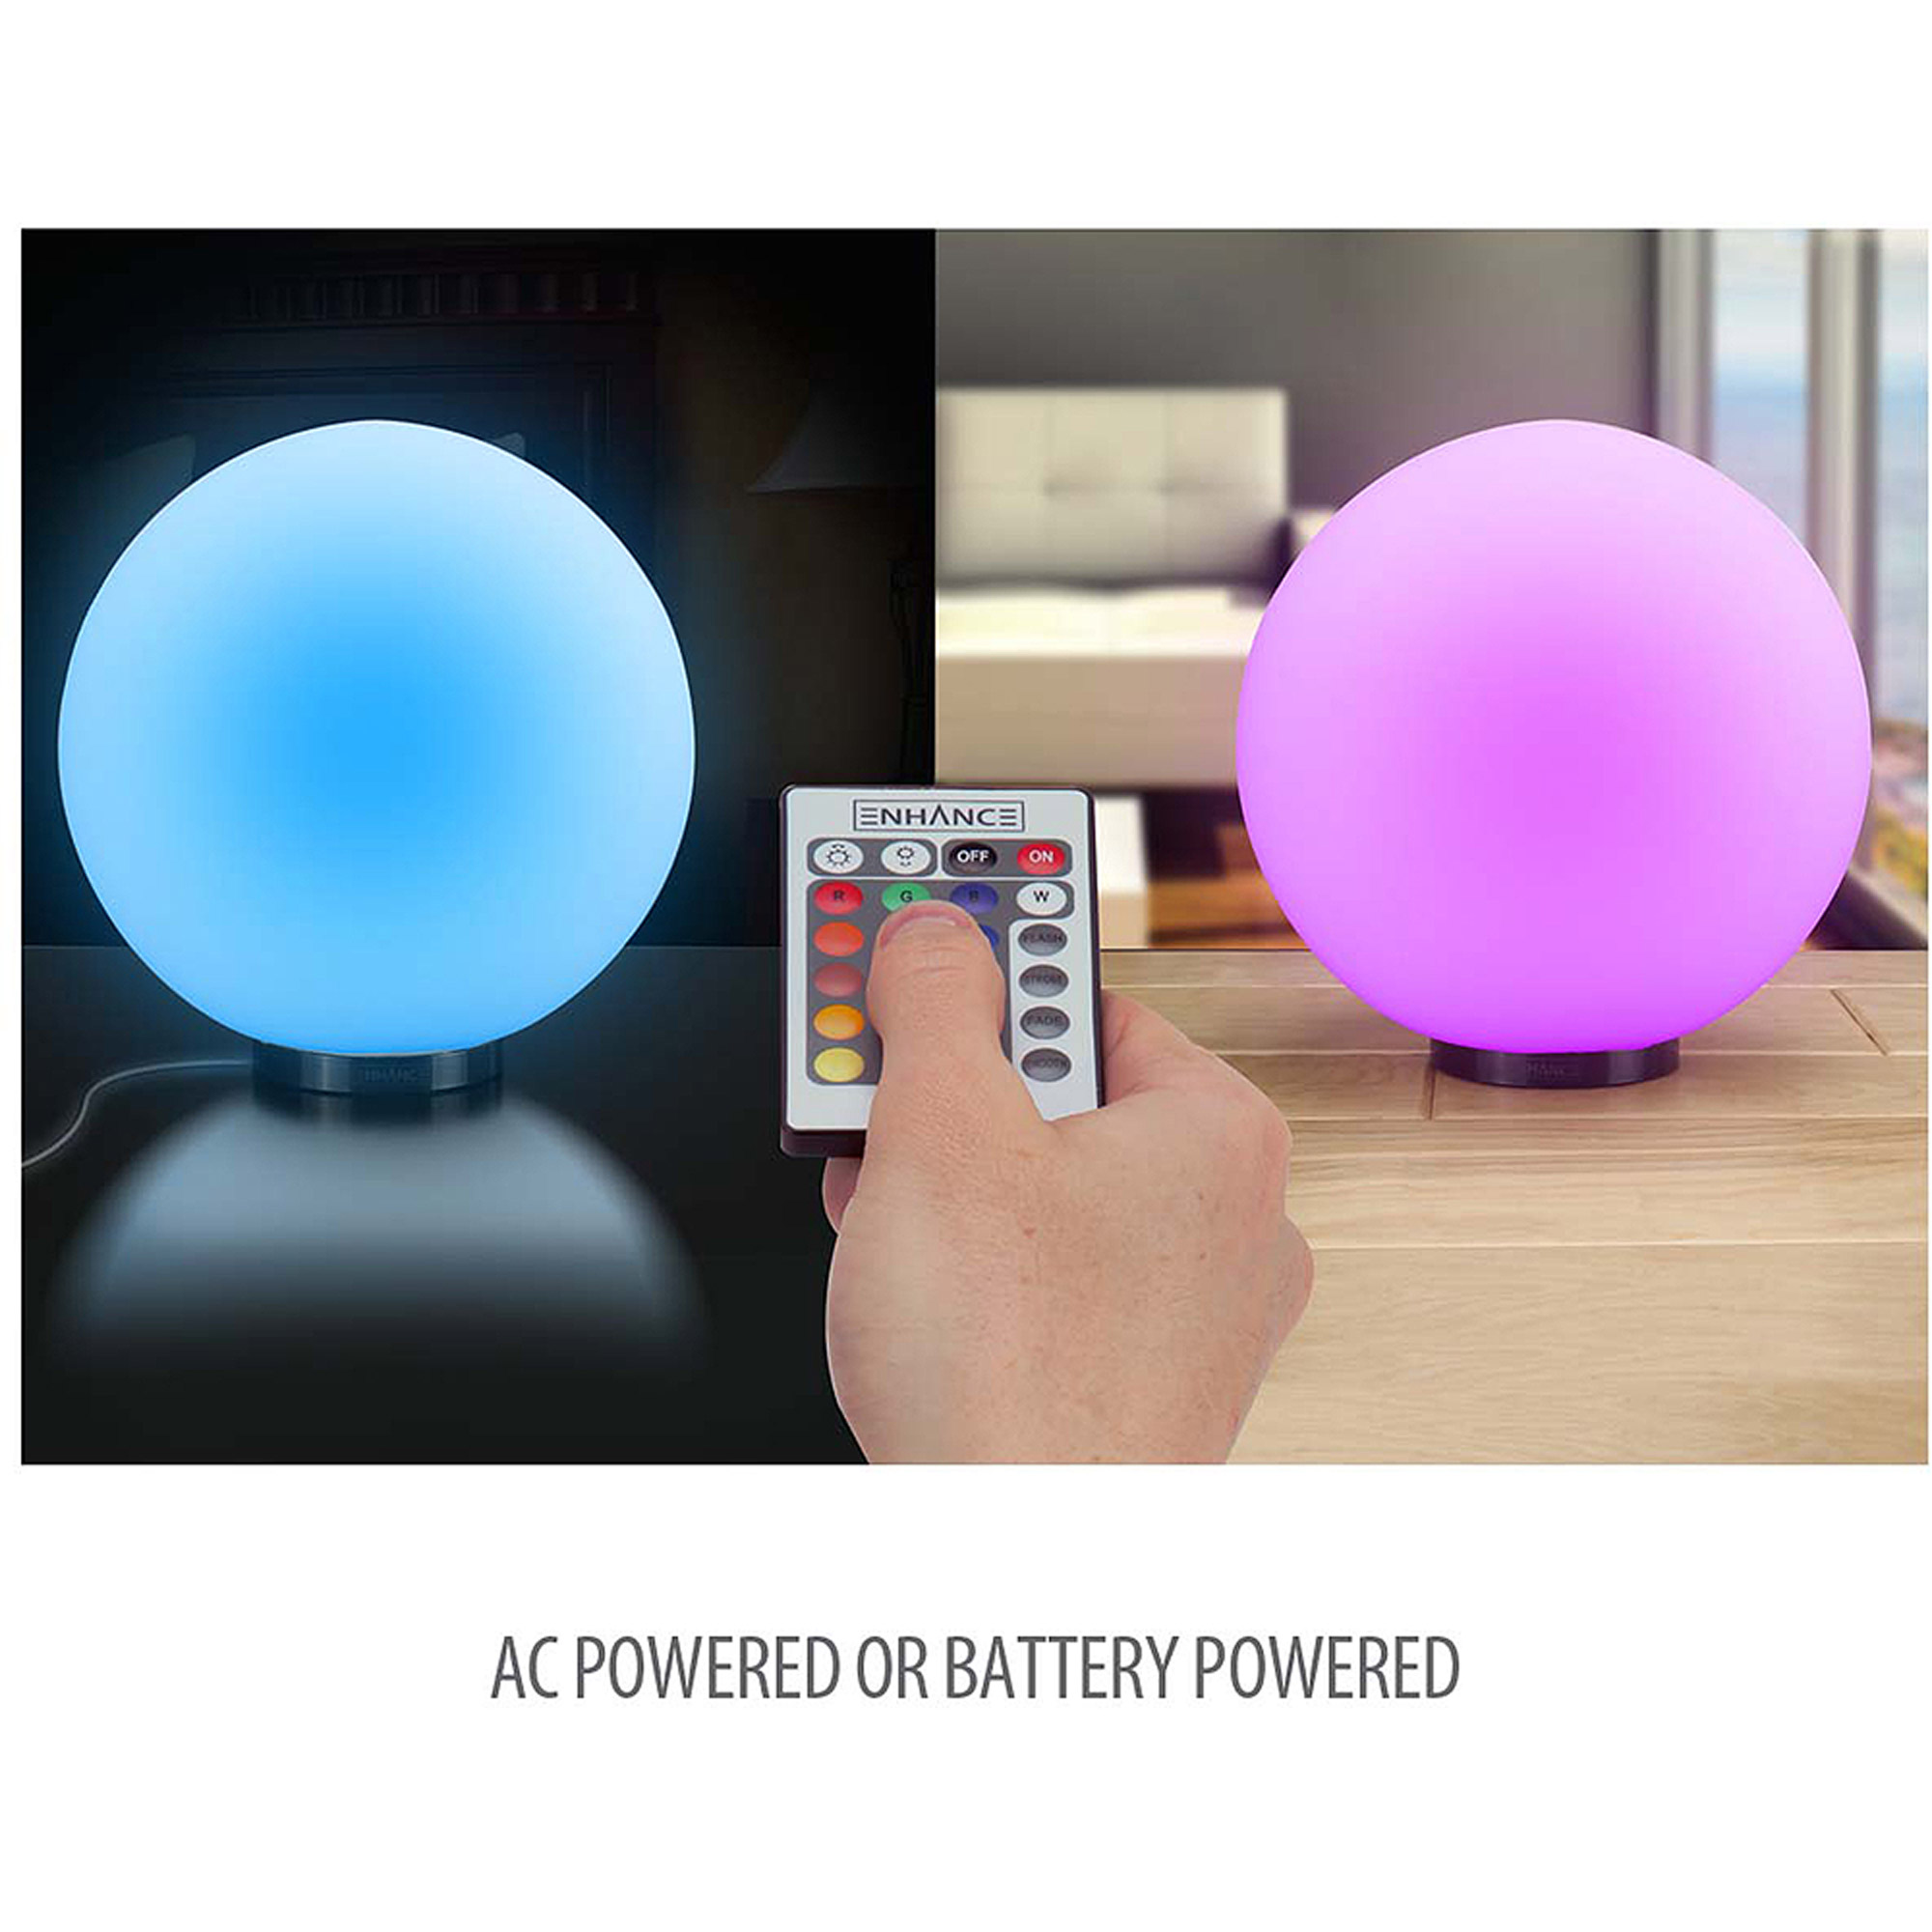 "ENHANCE Color Changing Children's 5.9"" LED Mood Lamp Night Light with 4 Lighting Modes & Battery or AC Adapter... by Accessory Power"